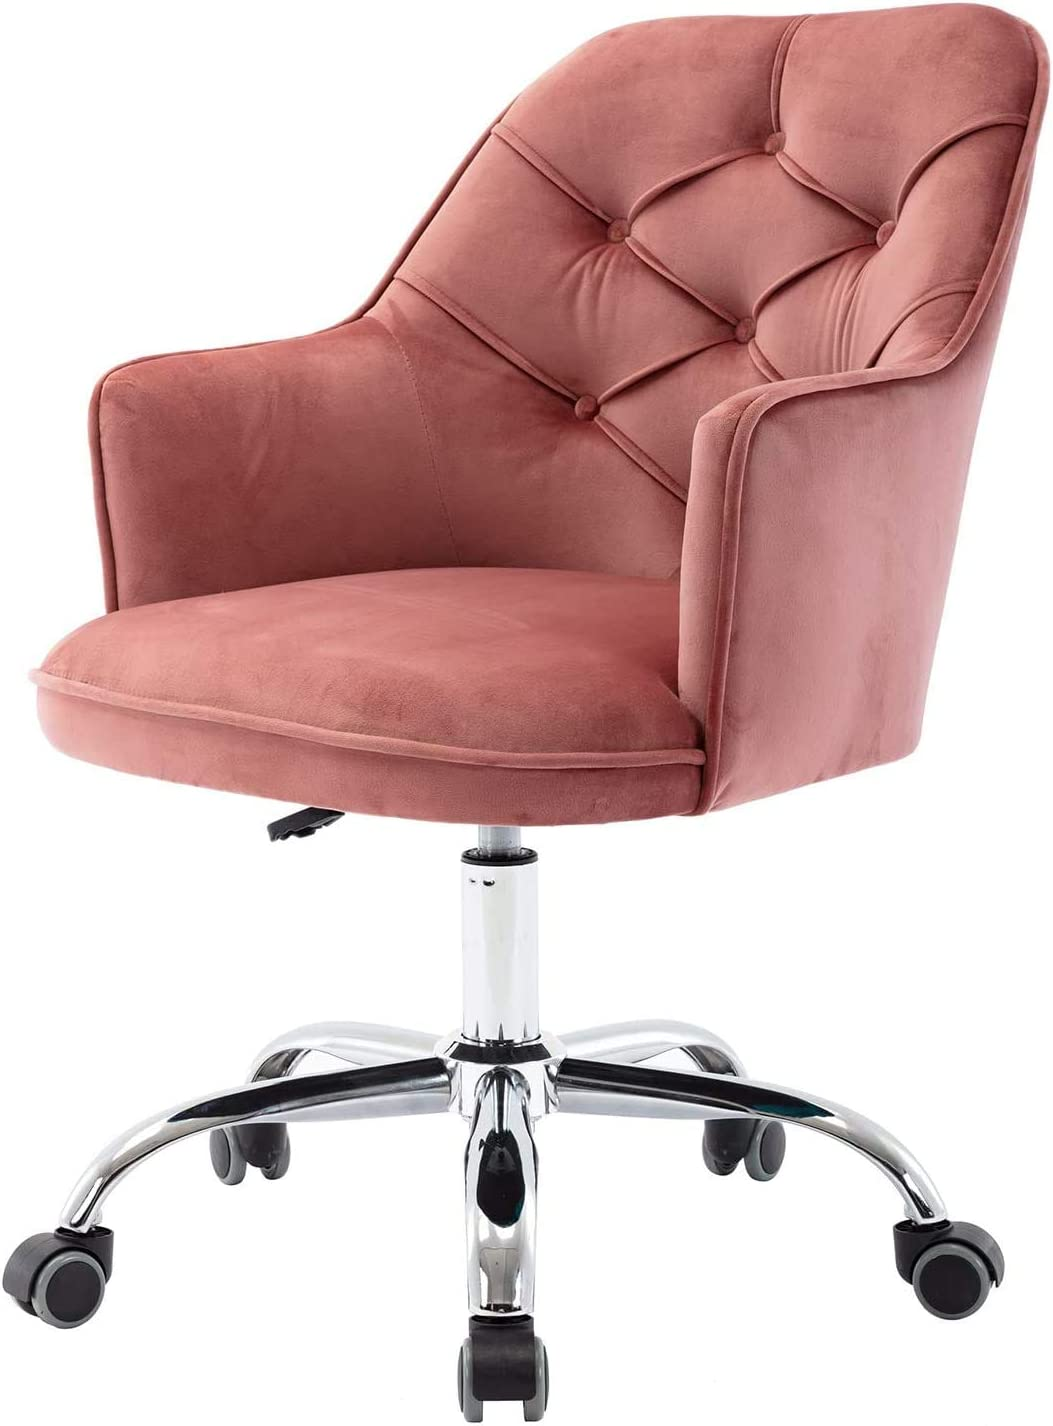 Top Living Room Chair On Wheels